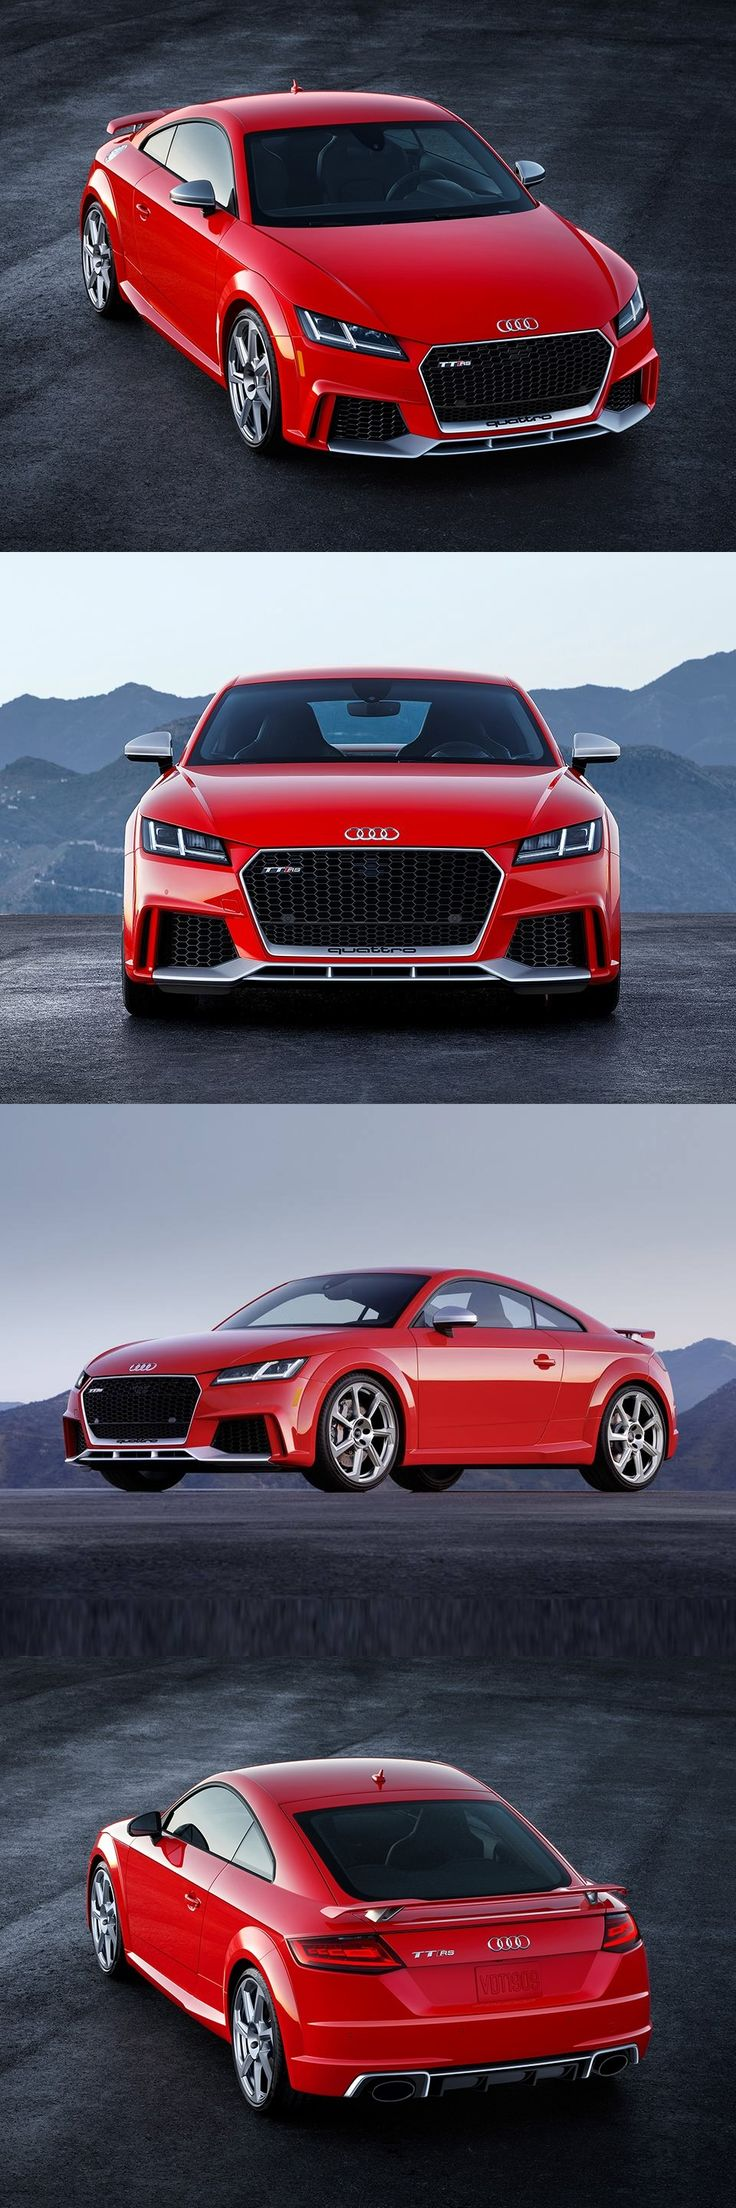 400 HP 2018 Audi TT RS Coupé, the most powerful TT ever produced is all set to debut at New York International Auto Show, priced at $65K.